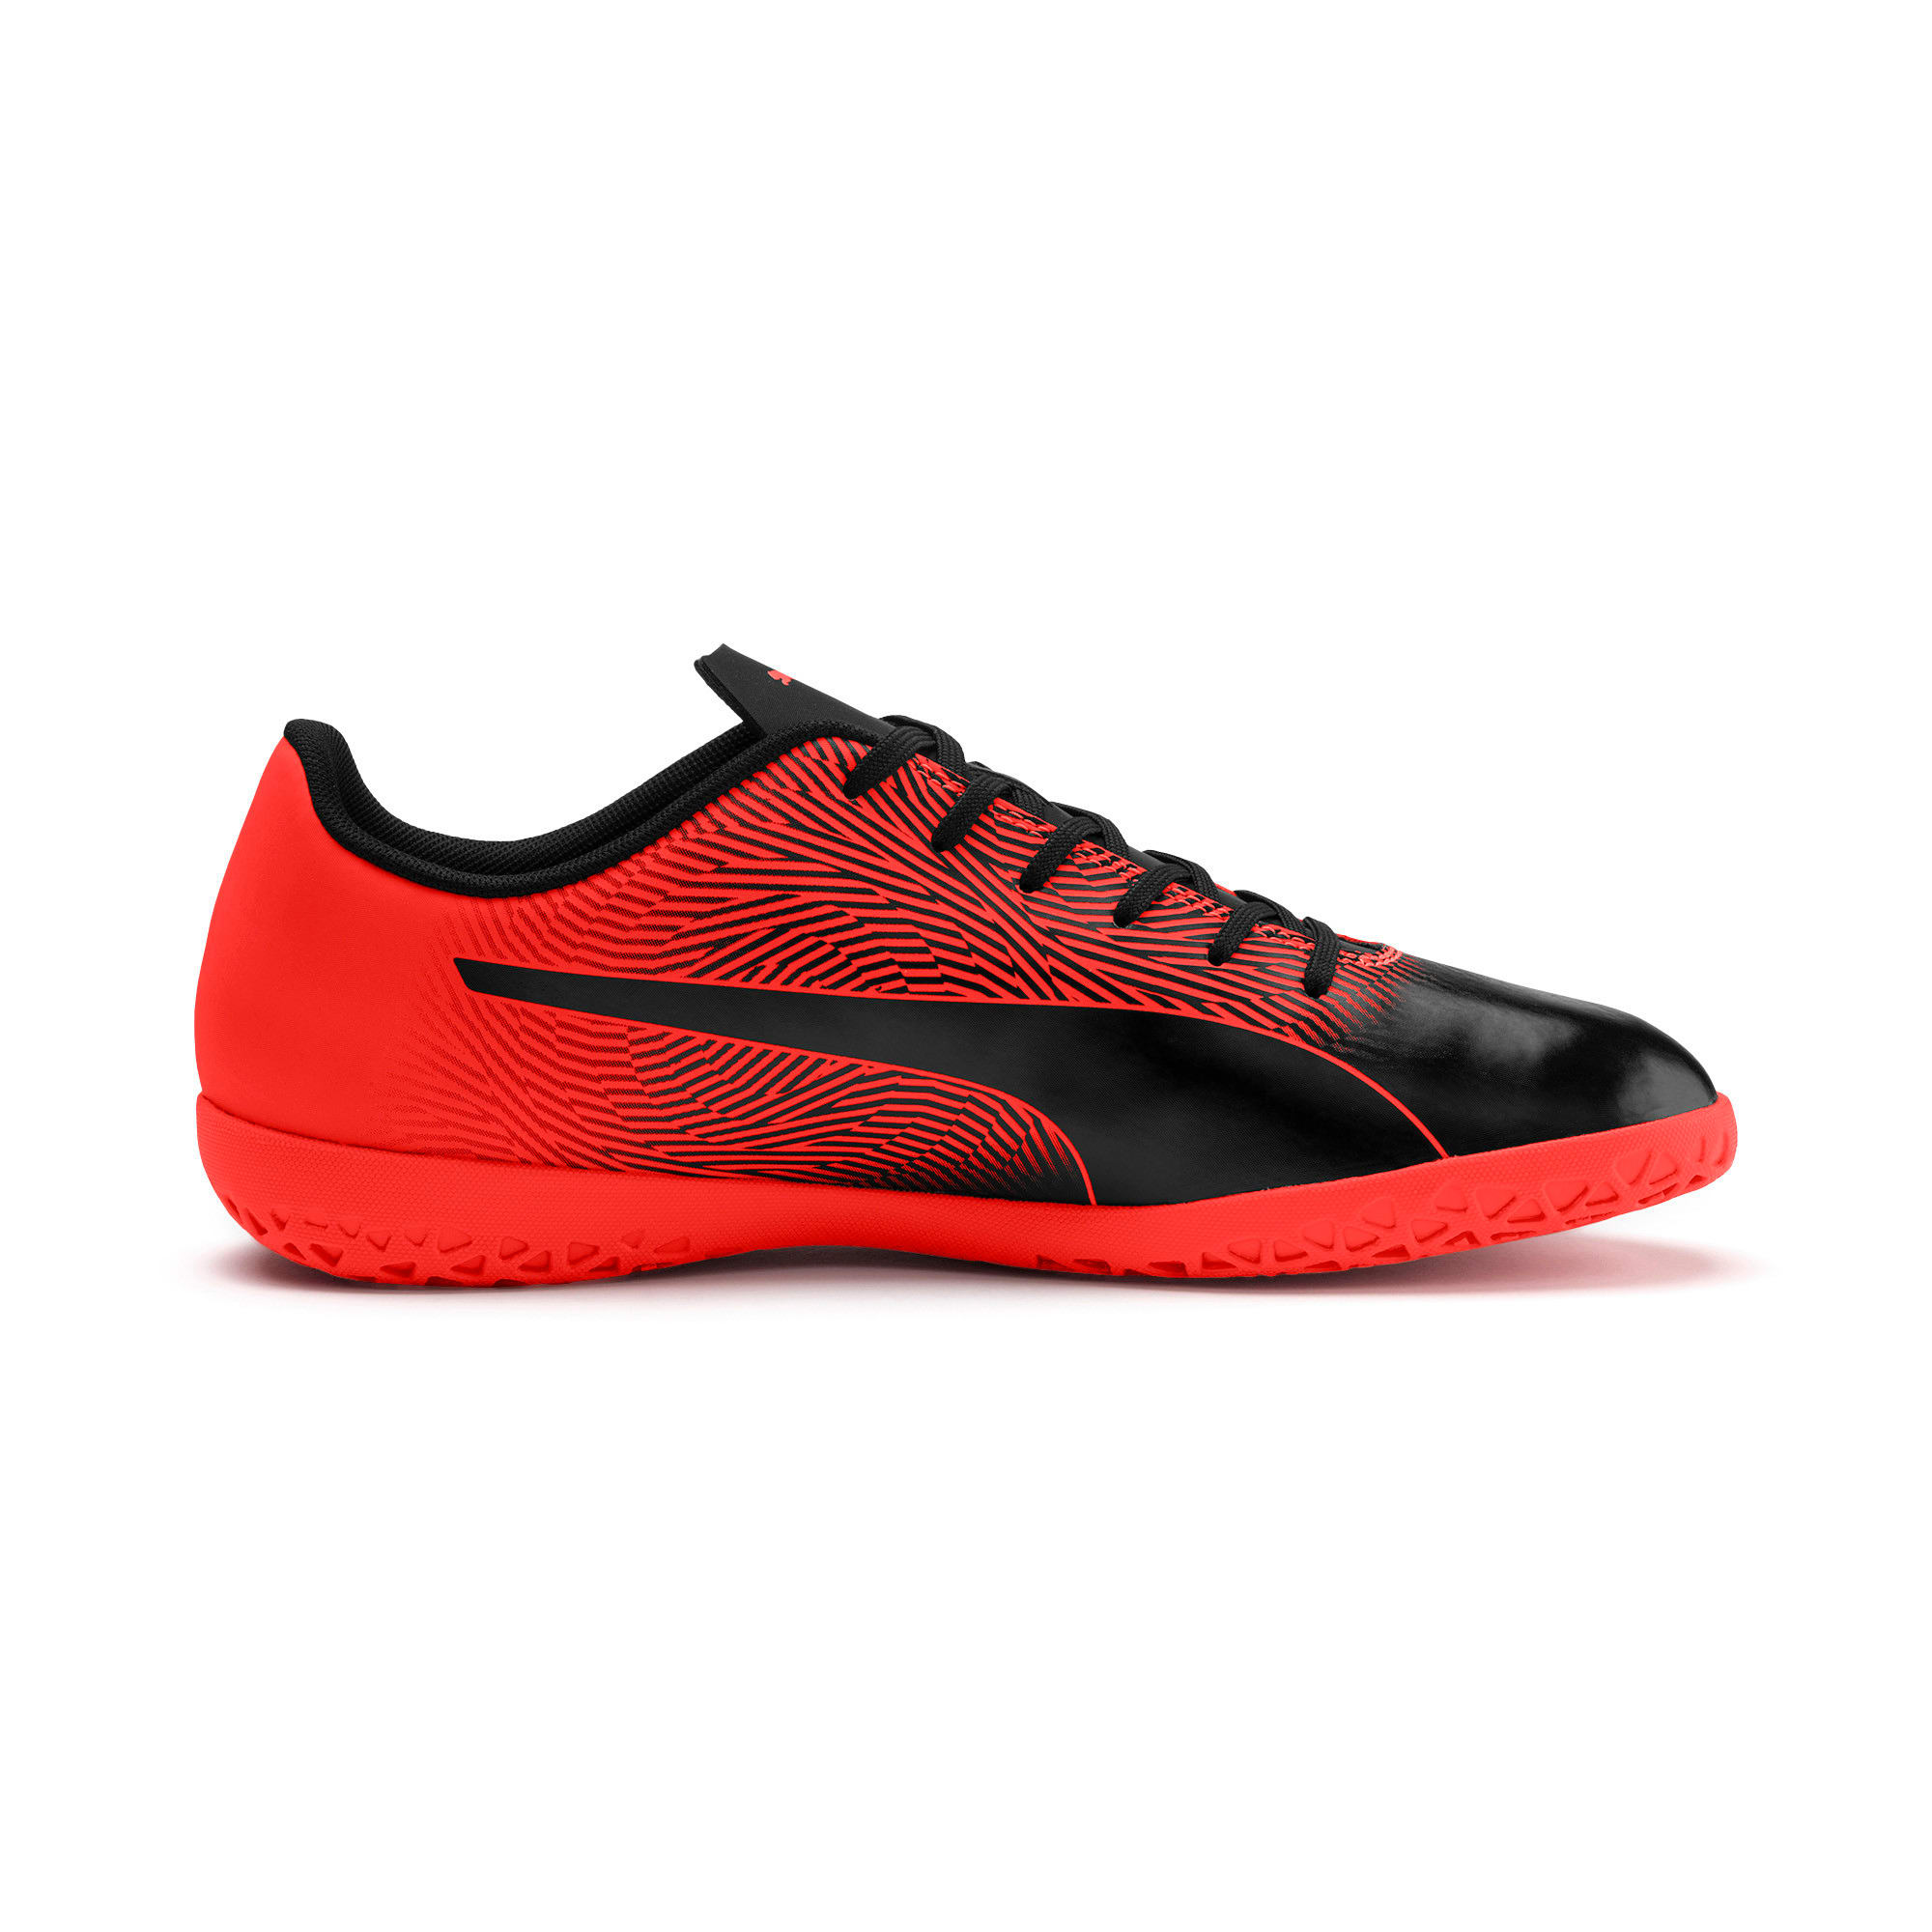 PUMA Spirit II IT Men's Soccer Shoes, Puma Black-Nrgy Red, large